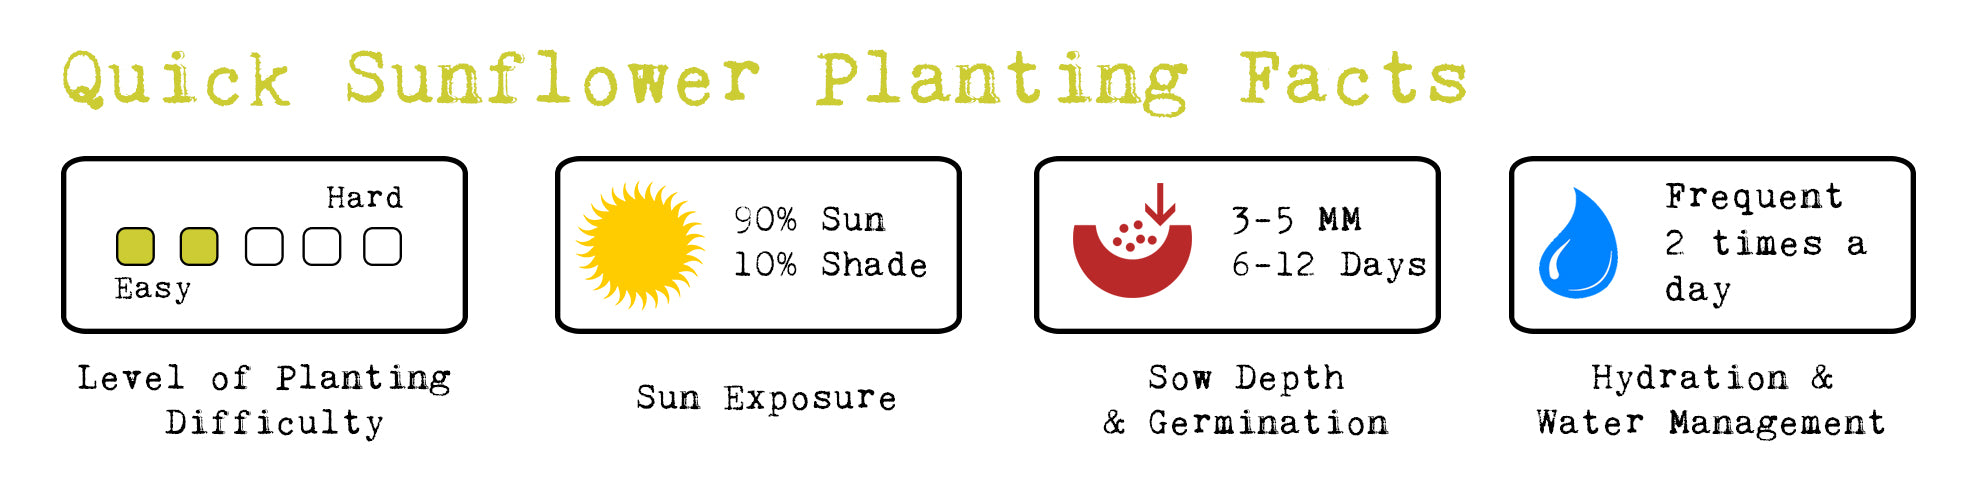 sunflower planting facts